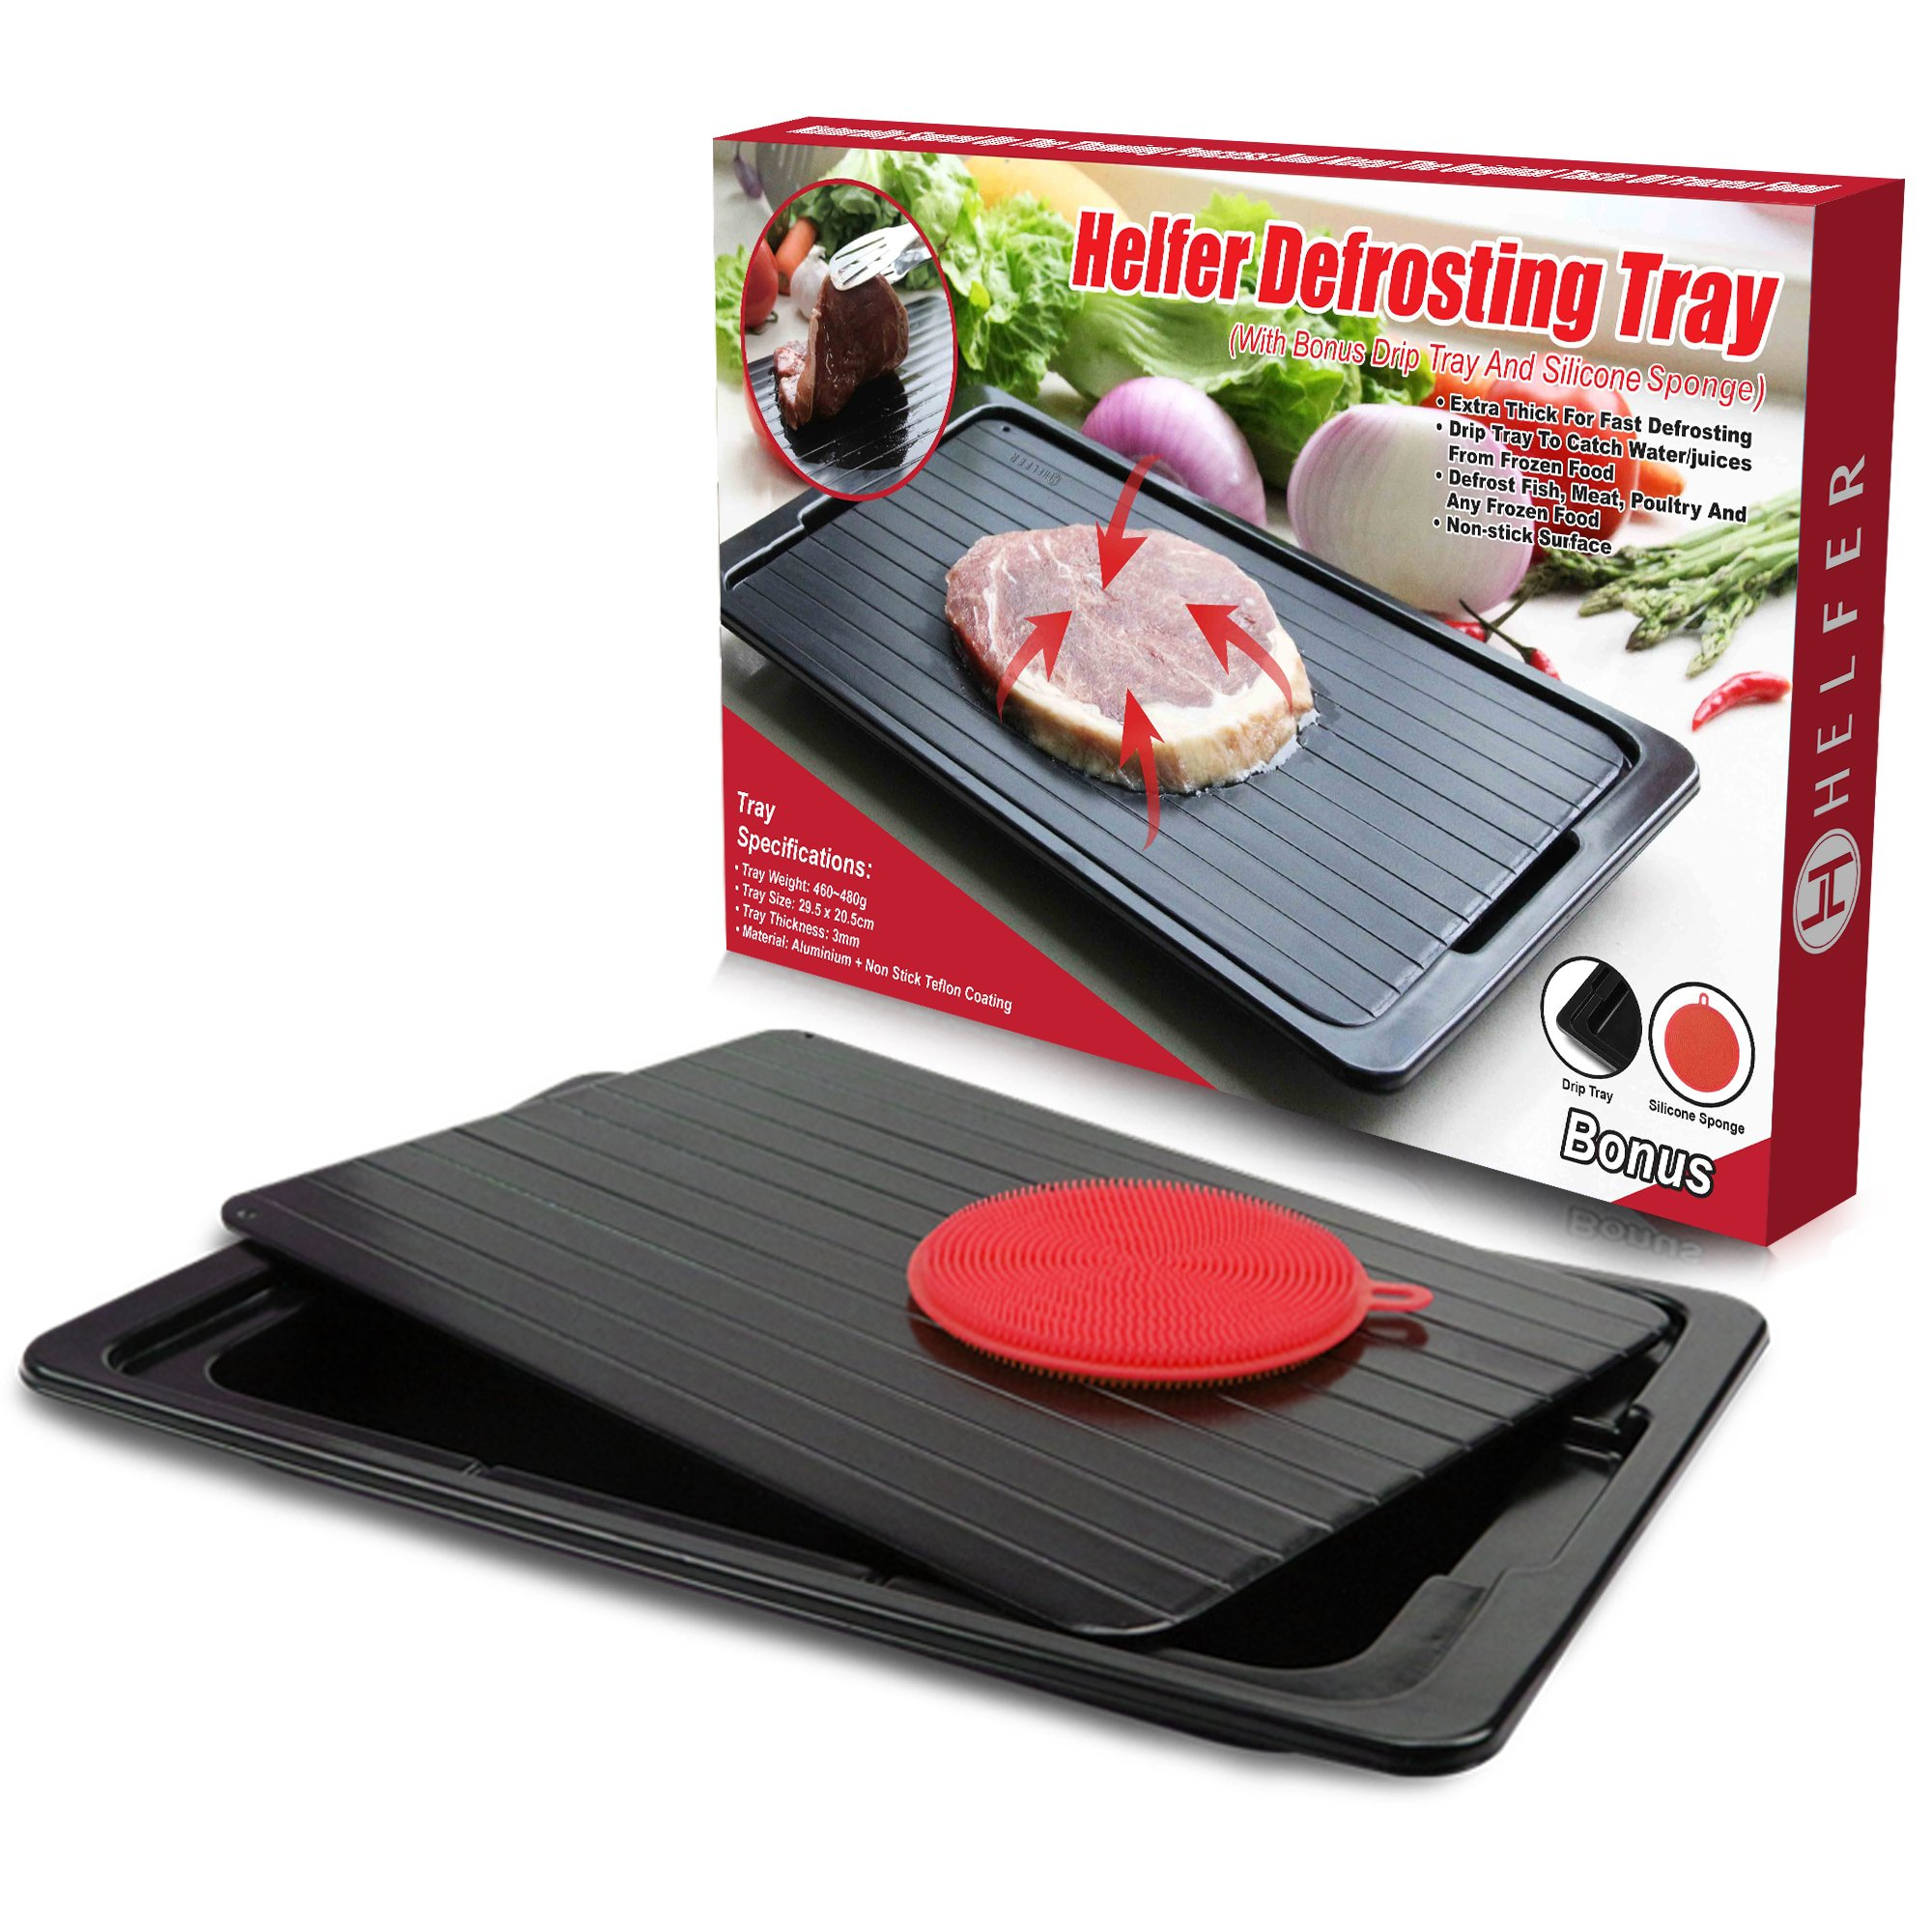 HelferX Defrosting Tray | Thawing Plate for fast defrosting of frozen foods | Premium Quality Defrost Tray | With bonus Drip tray and silicone sponge | Extra Thick (3mm) Non-stick by Helfer